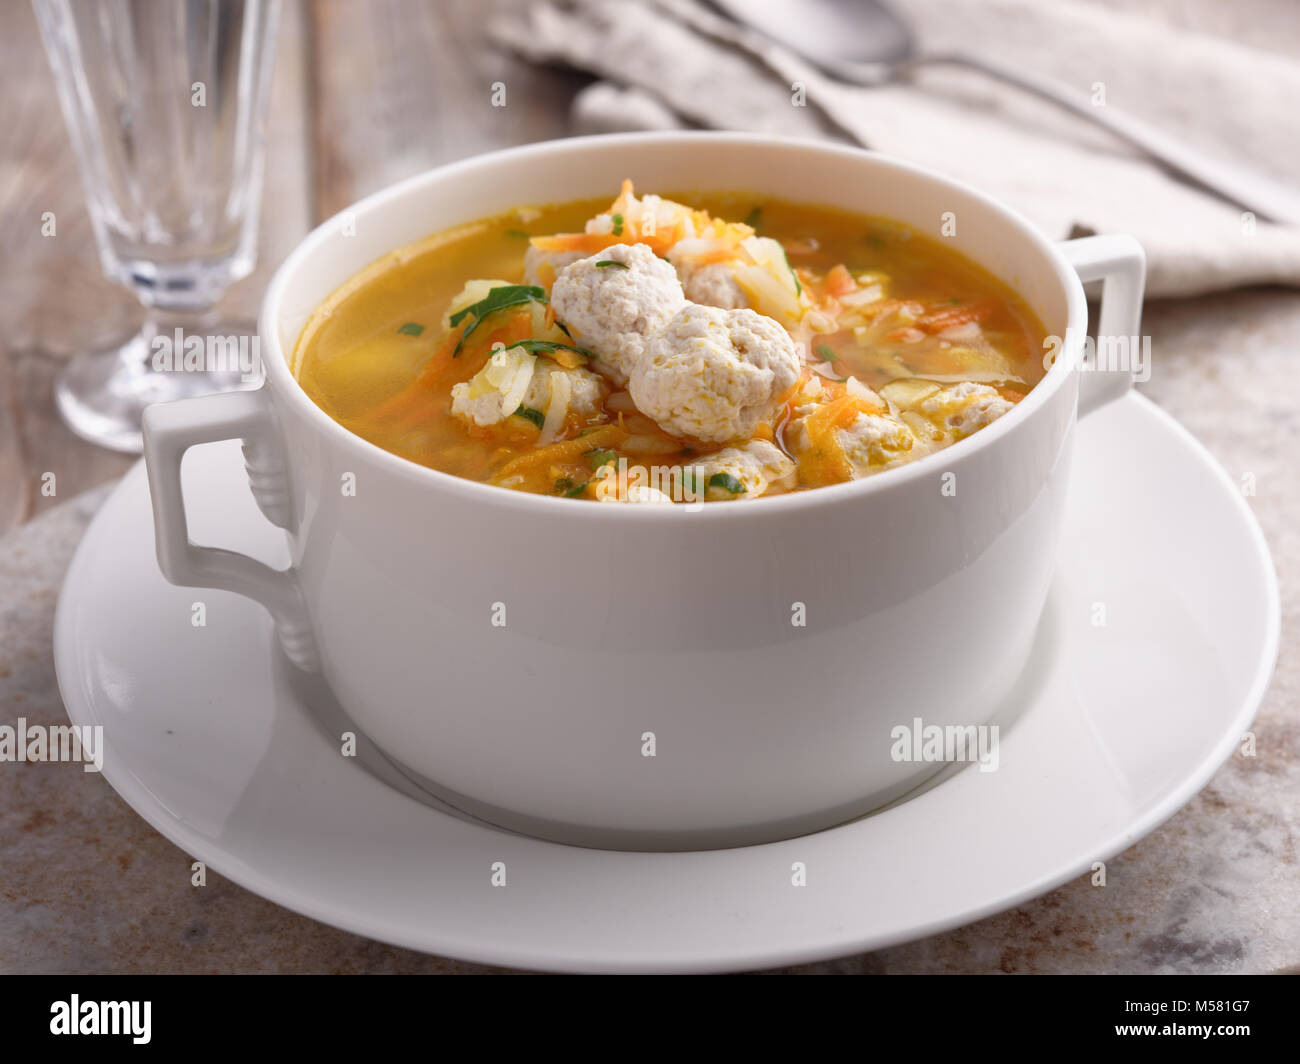 Chicken meatball soup with vegetables - Stock Image